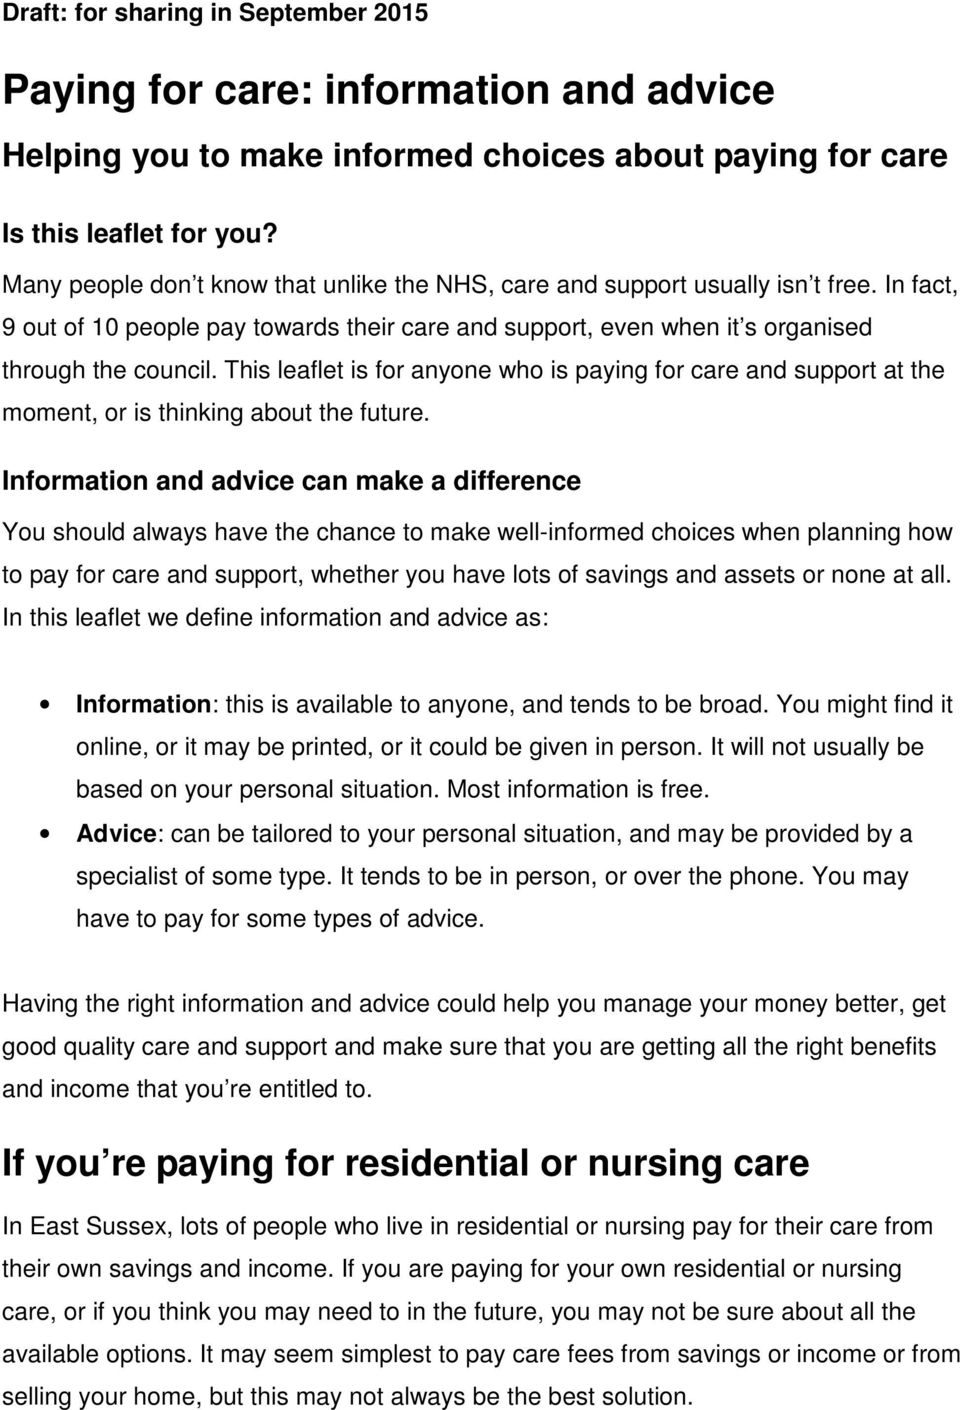 This leaflet is for anyone who is paying for care and support at the moment, or is thinking about the future.